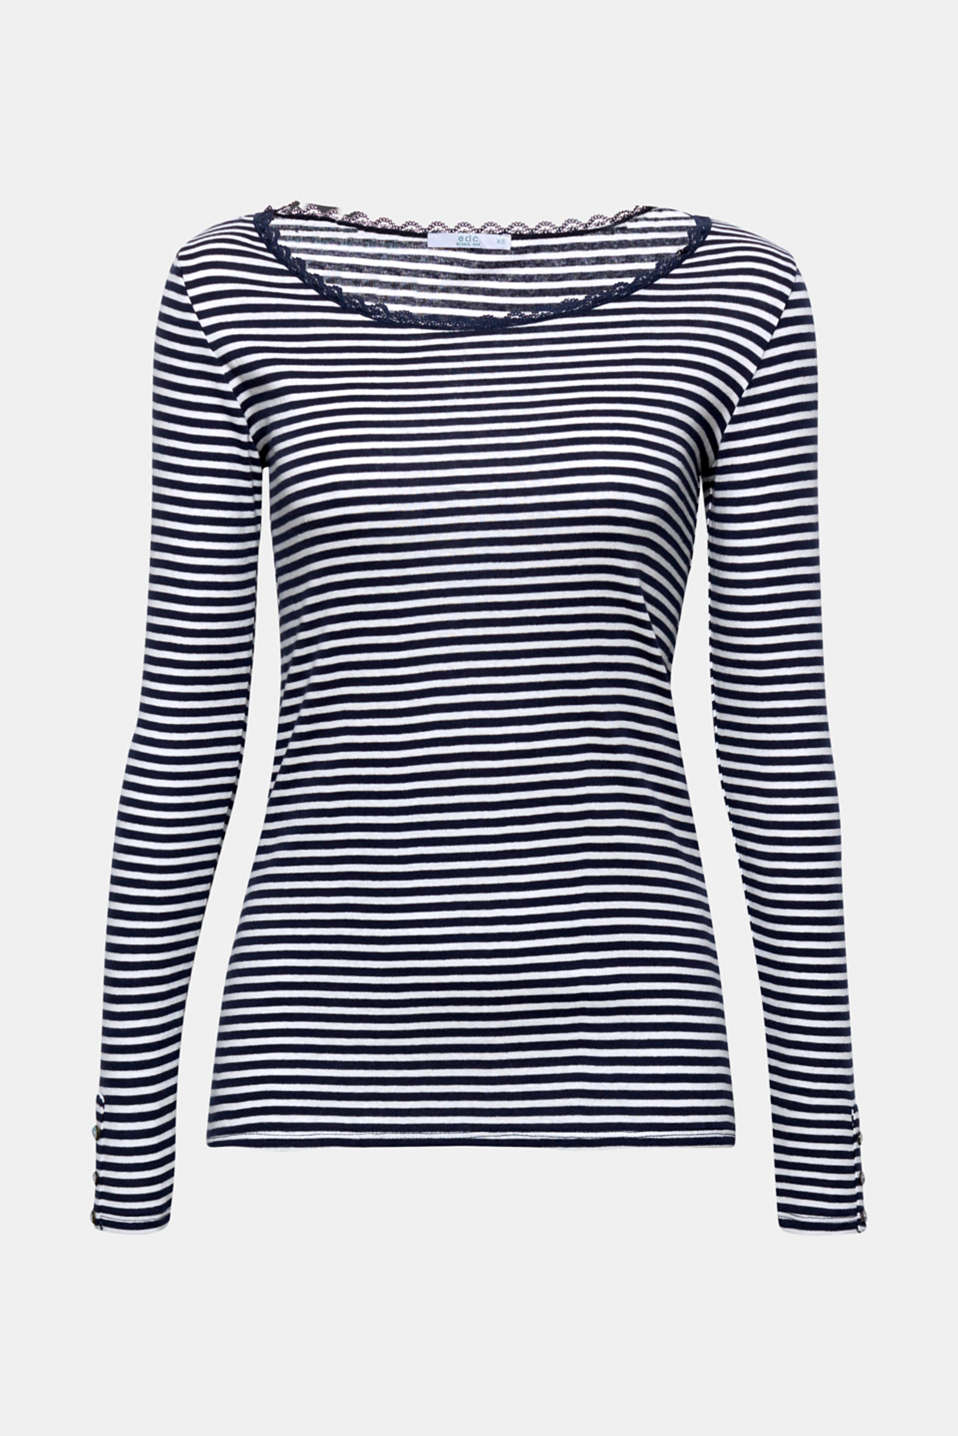 Lace meets stripes and makes this super soft long sleeve top a must-have piece, containing gently processed, high-quality organic cotton!